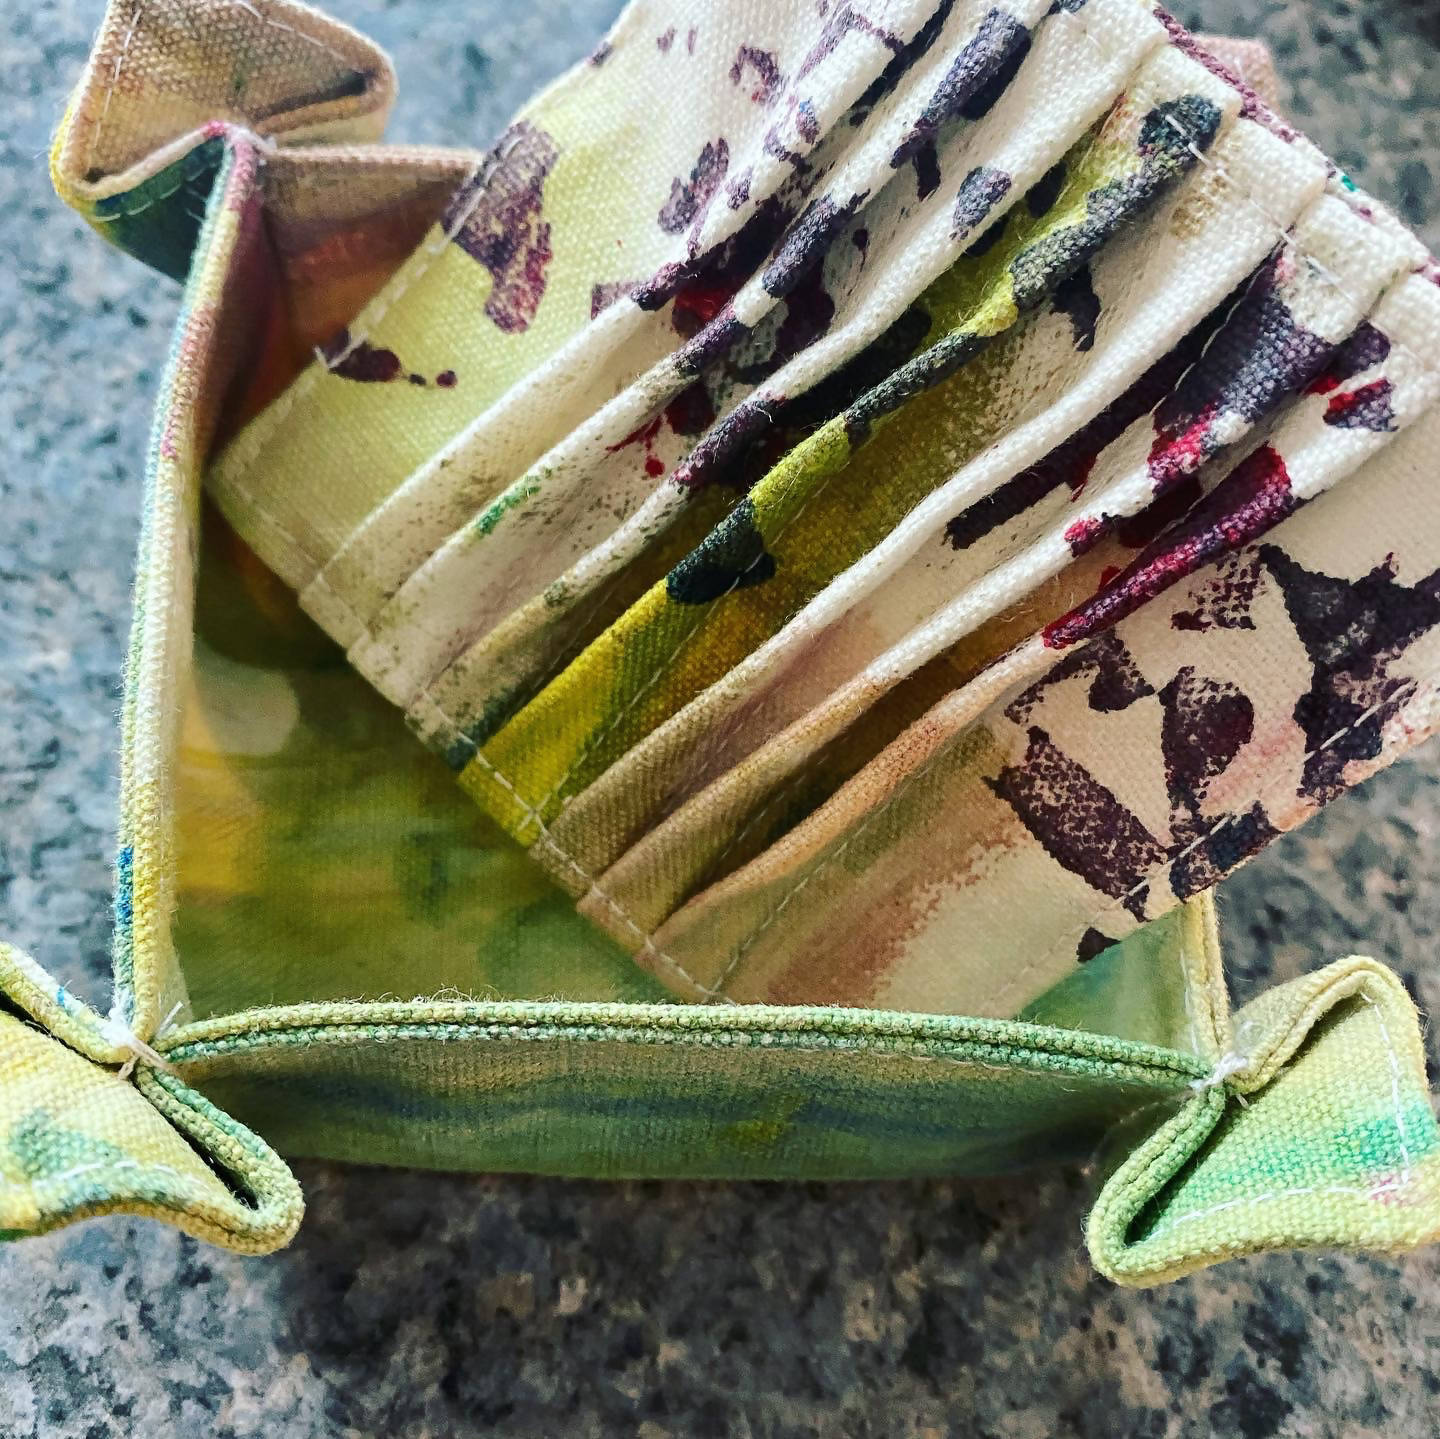 Hand Painted Canvas Artisan Soap Holder Set